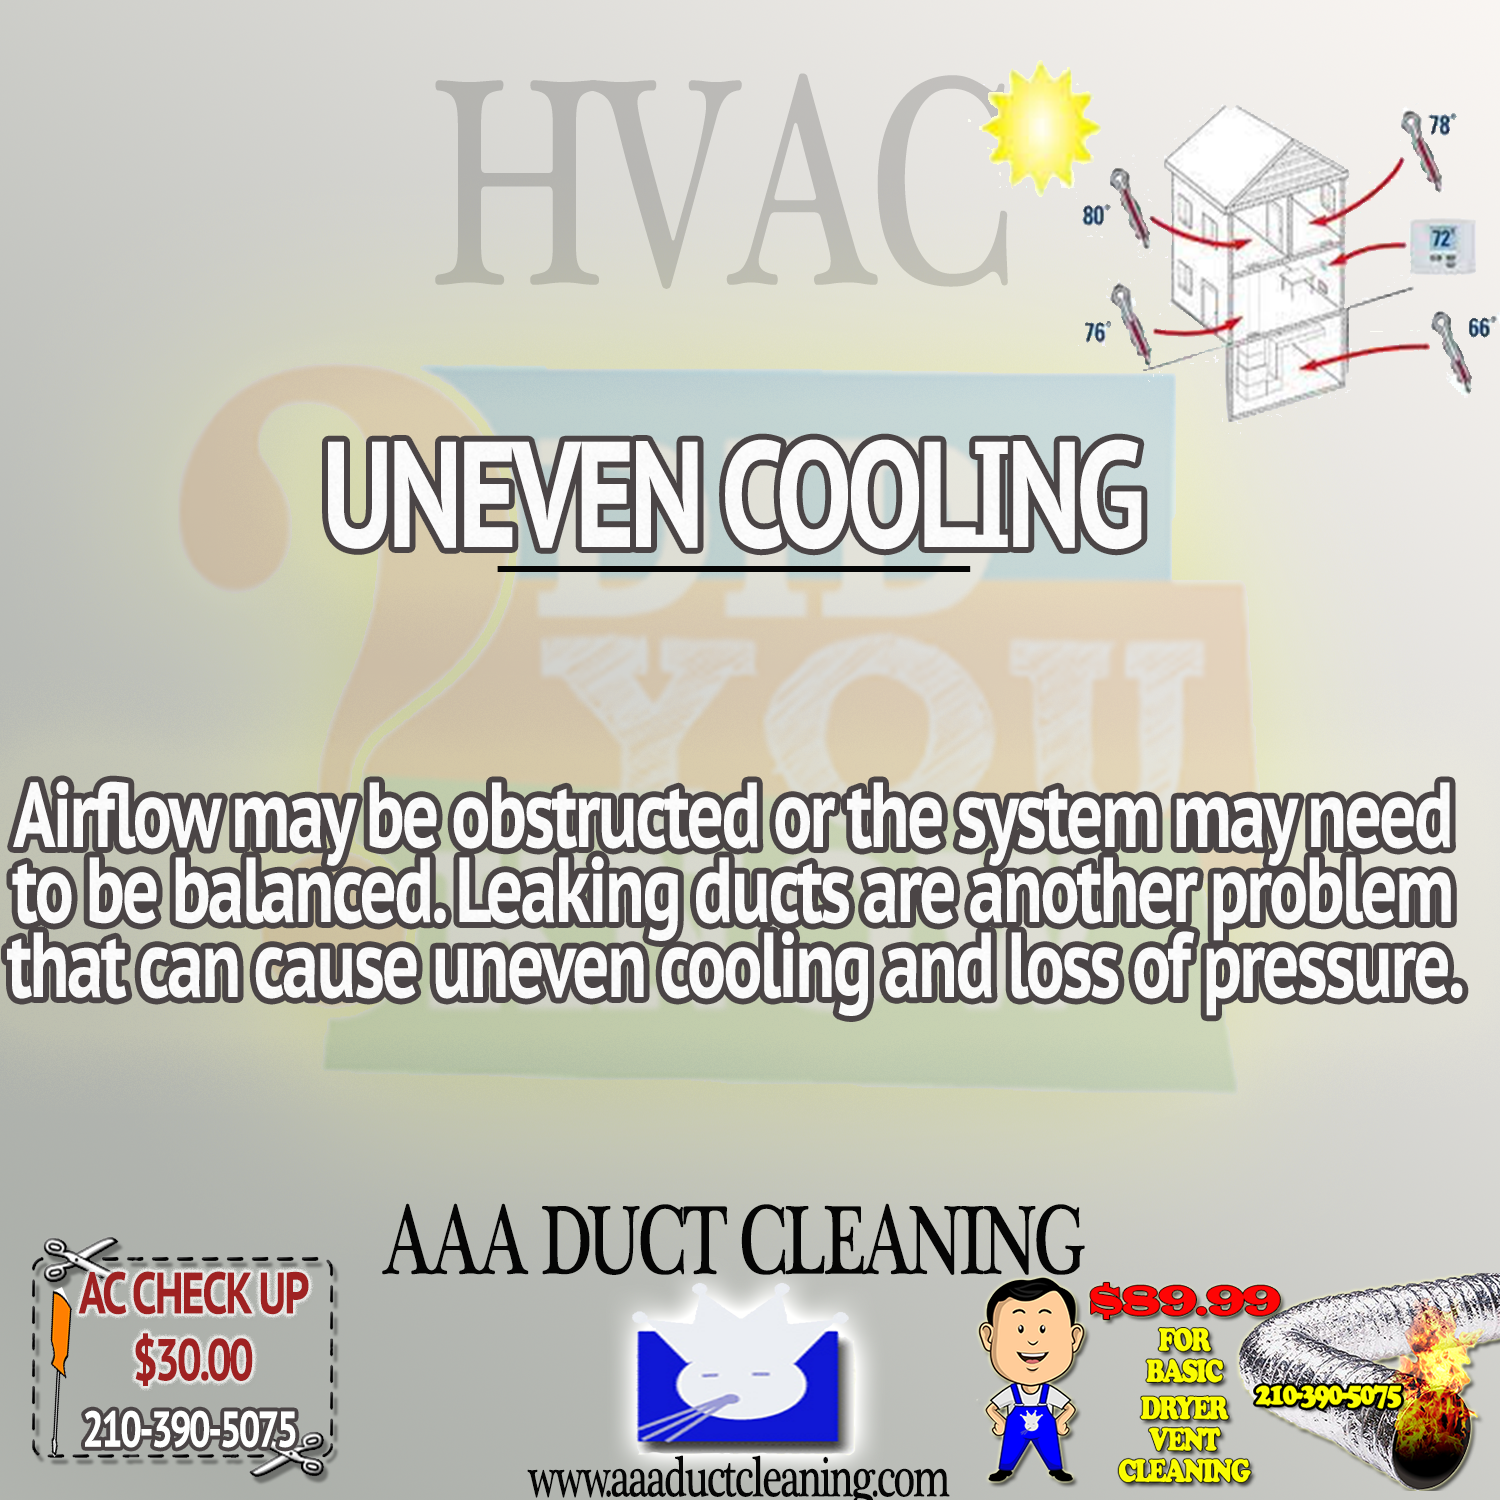 Uneven Cooling Airflow May Be Obstructed Or The System May Need To